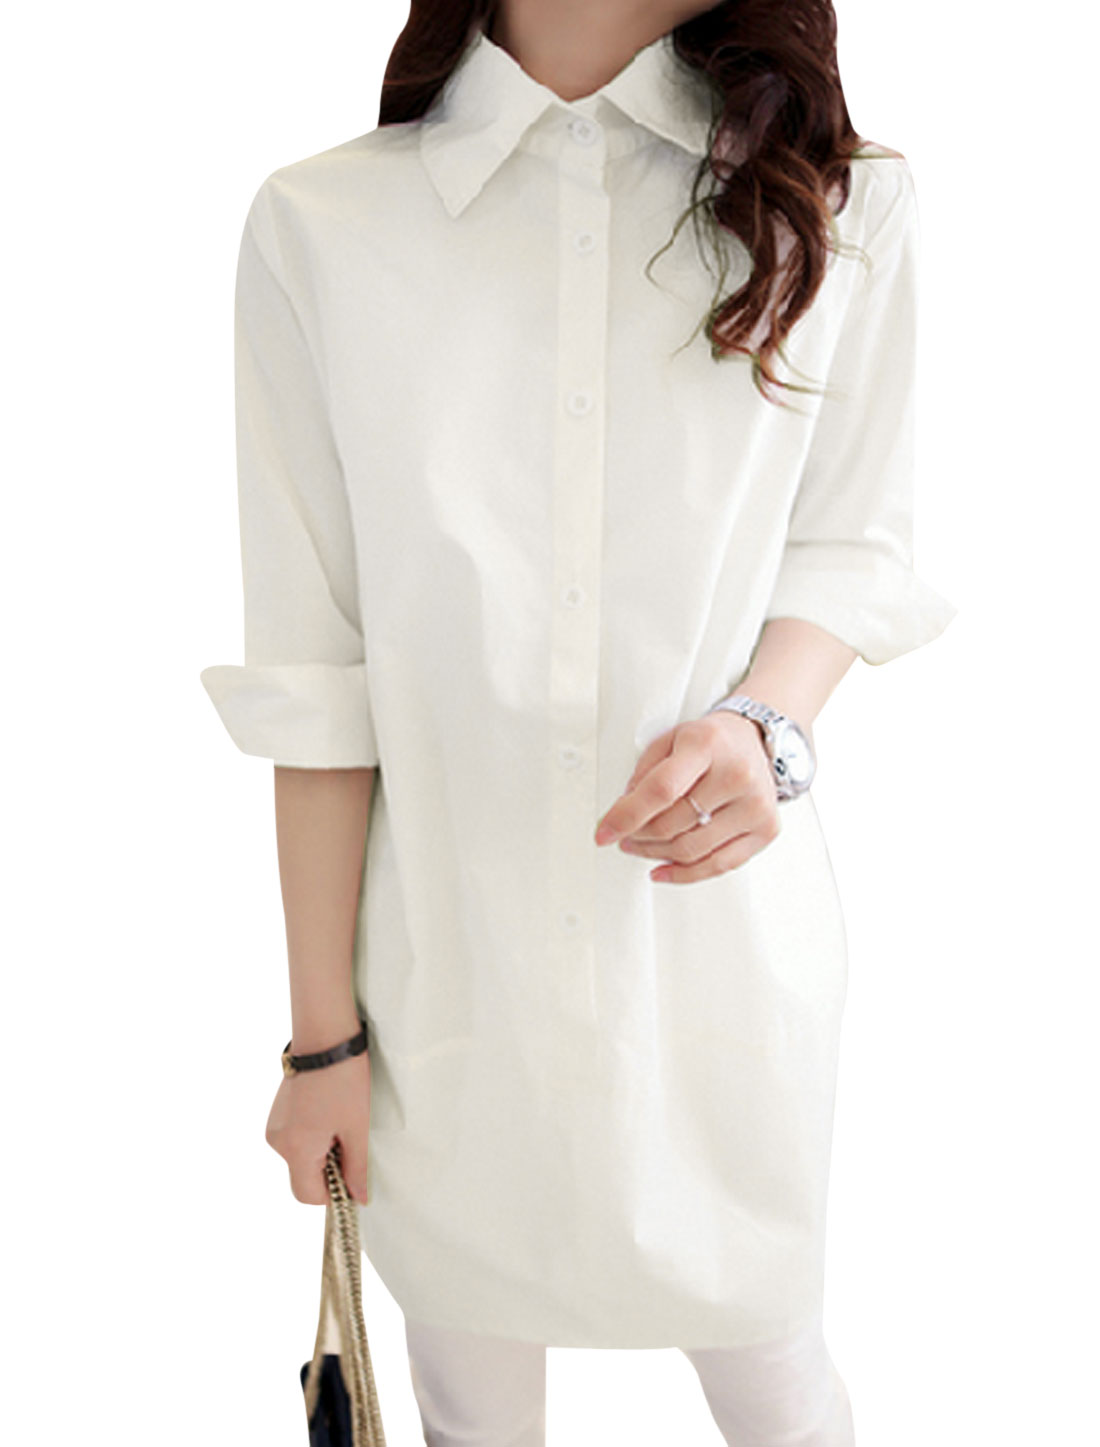 Lady Point Collar 3/4 Sleeve Single Breasted Tunic Shirt White XS